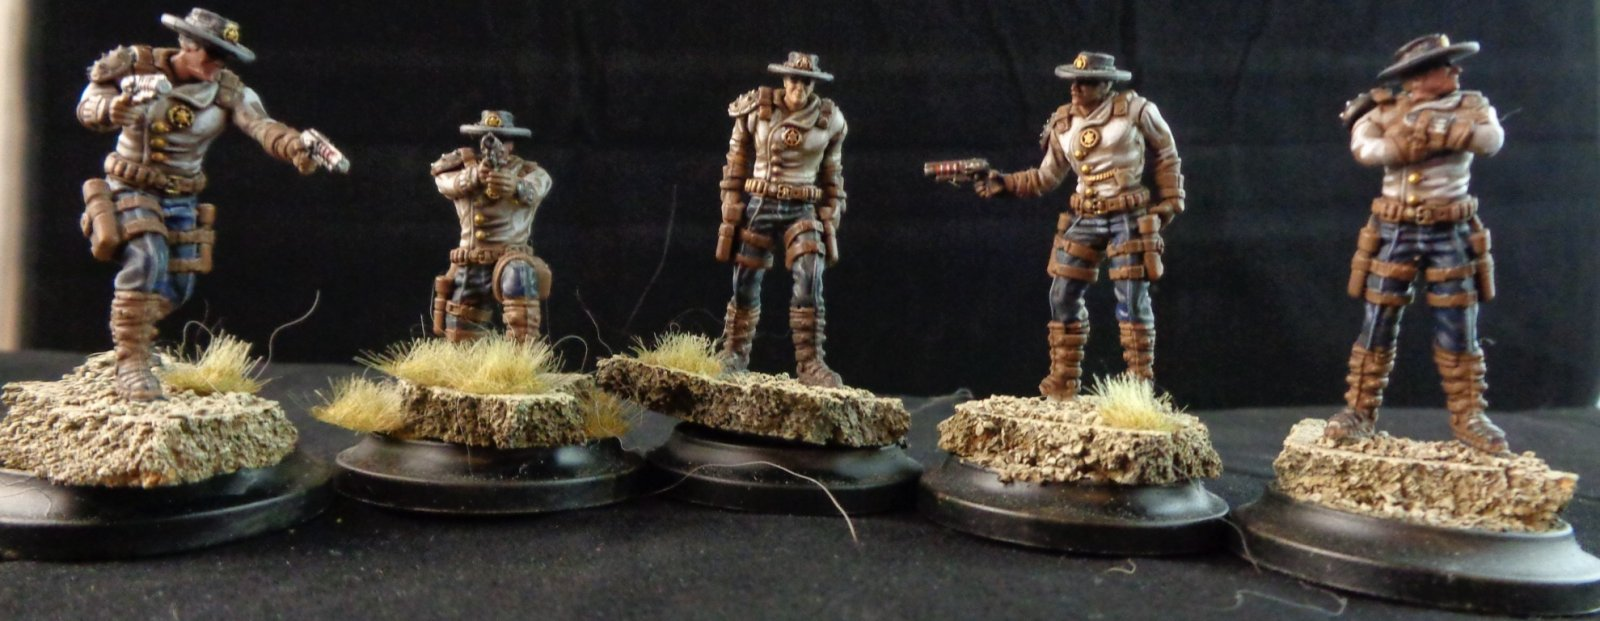 Deputized Gunslingers (2) (FILEminimizer).JPG